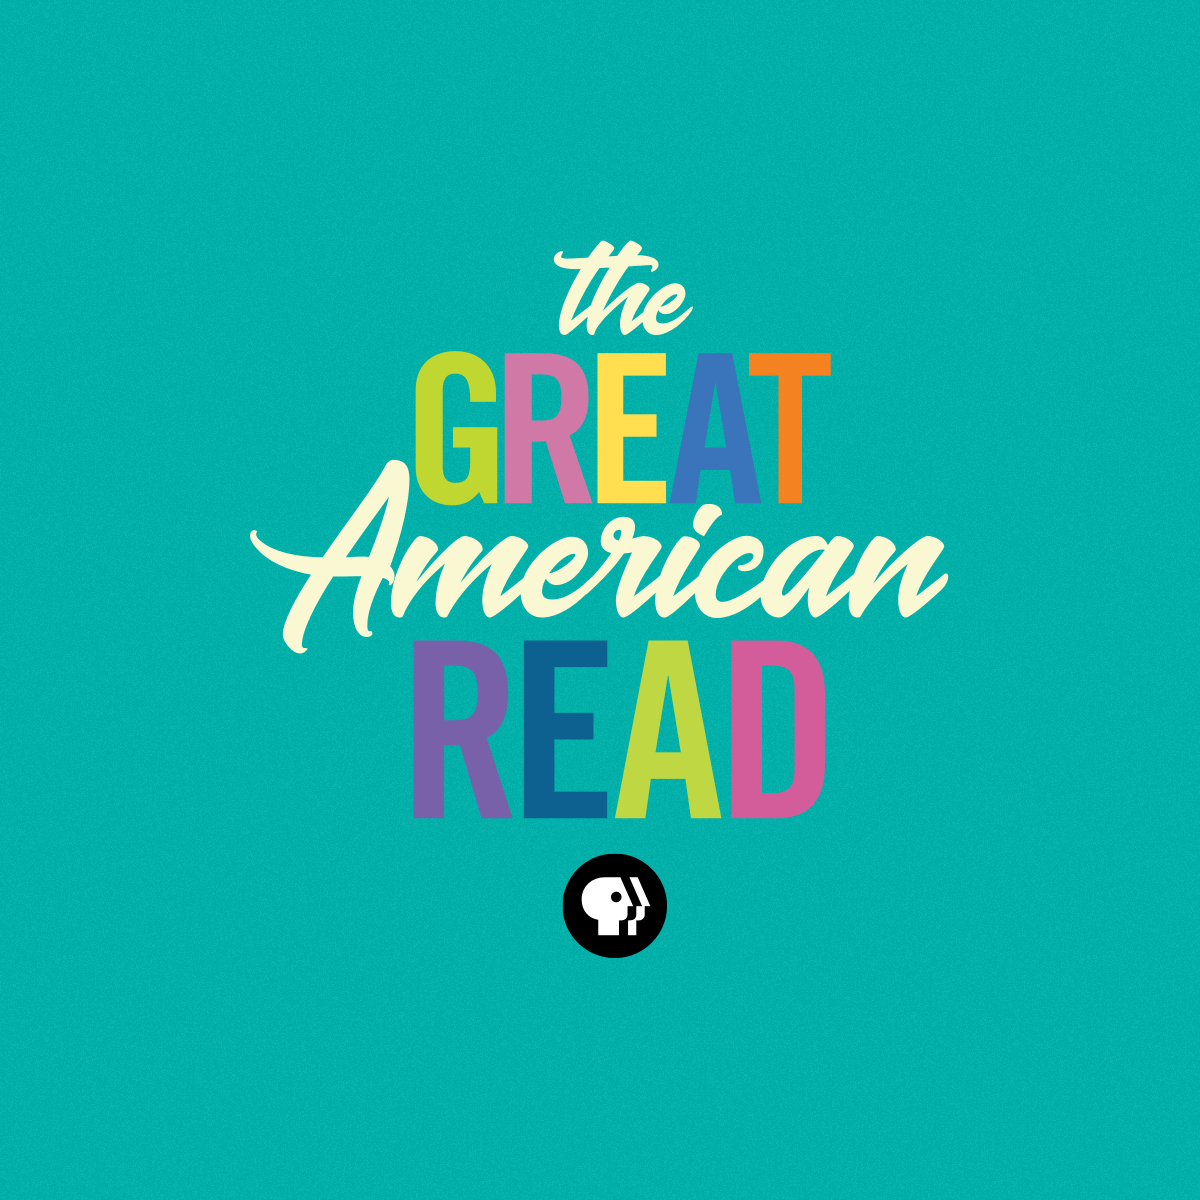 multicolored logo of great american read